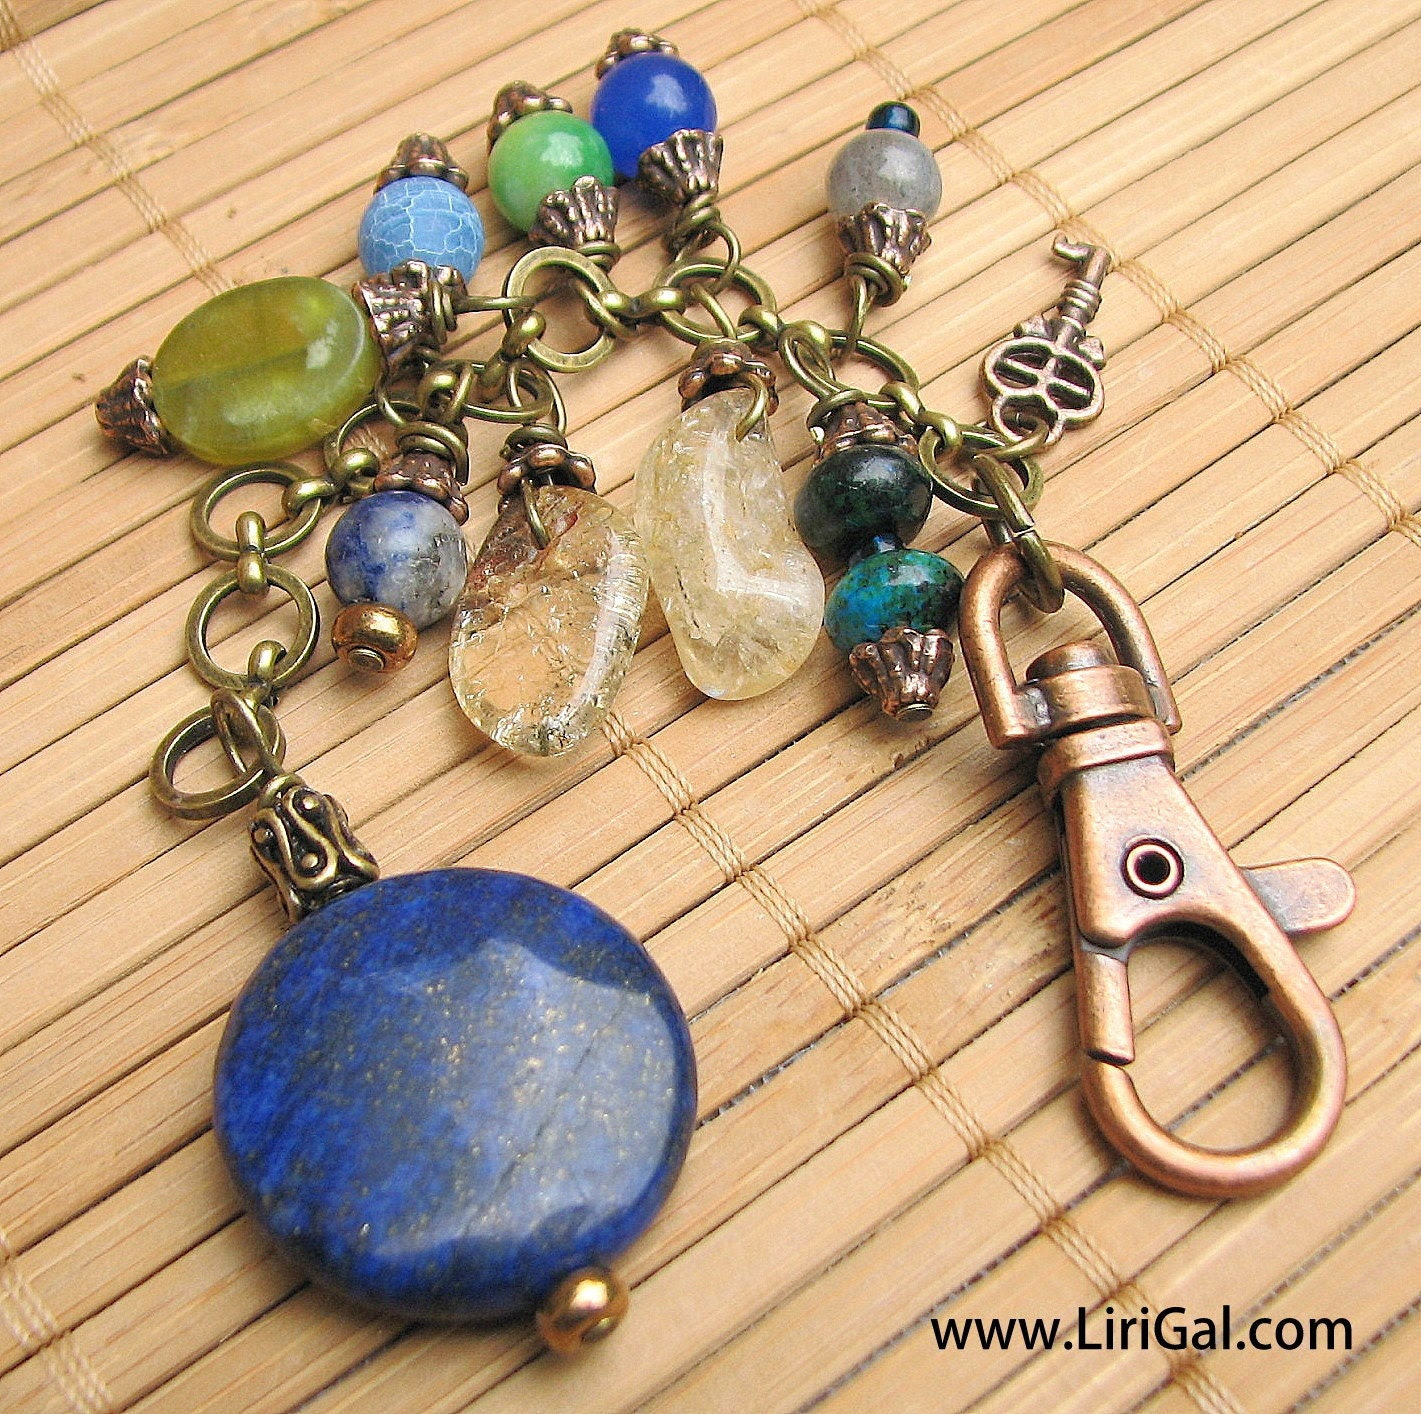 Purse Charm or Keychain in multicolor